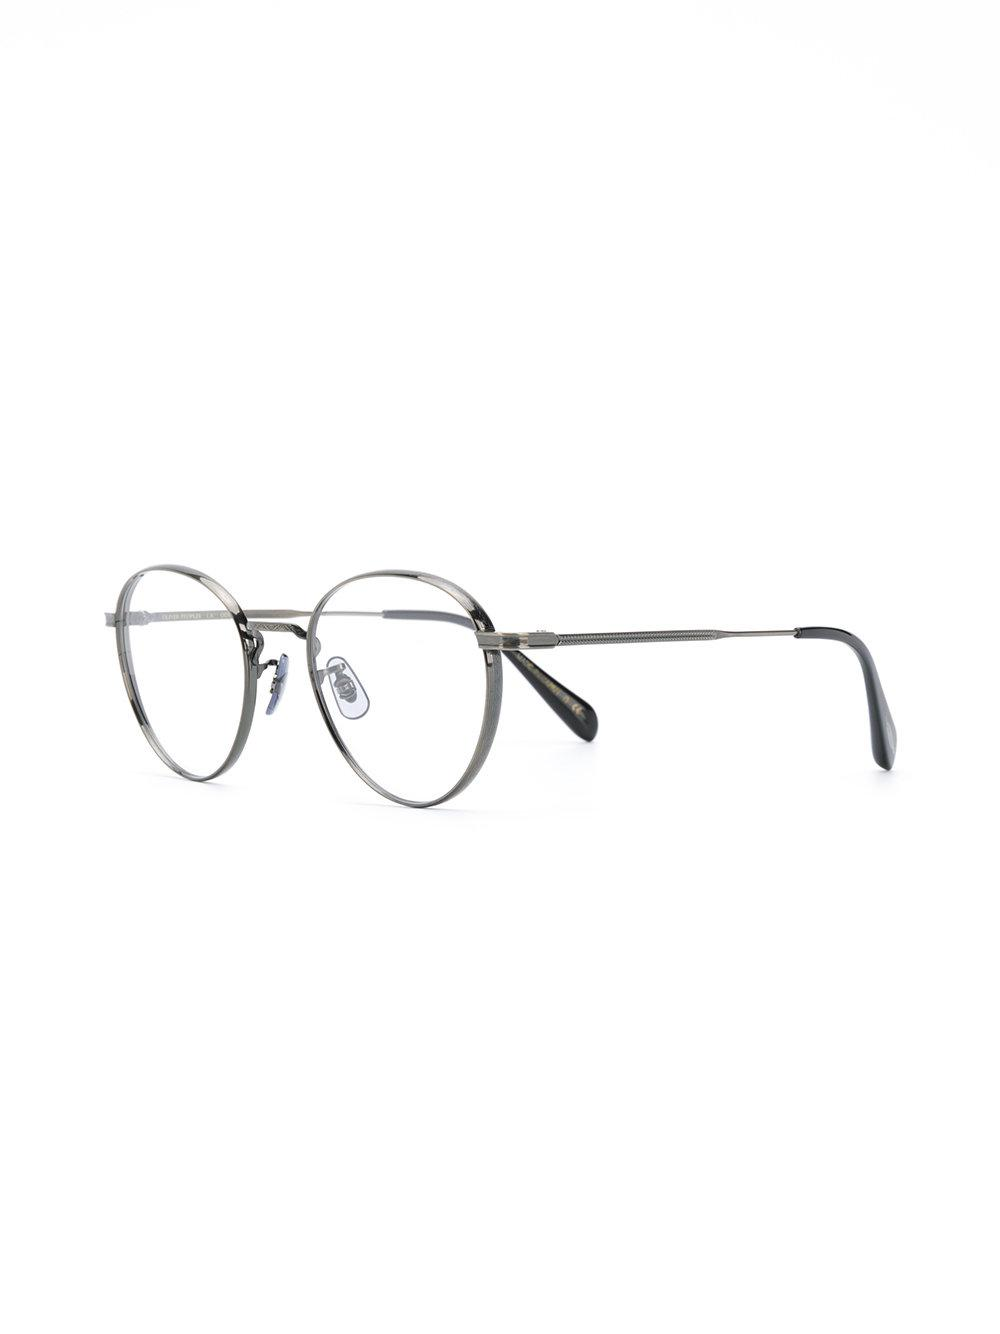 df88c0b8e85 Oliver Peoples Round-frame Glasses in Metallic - Lyst